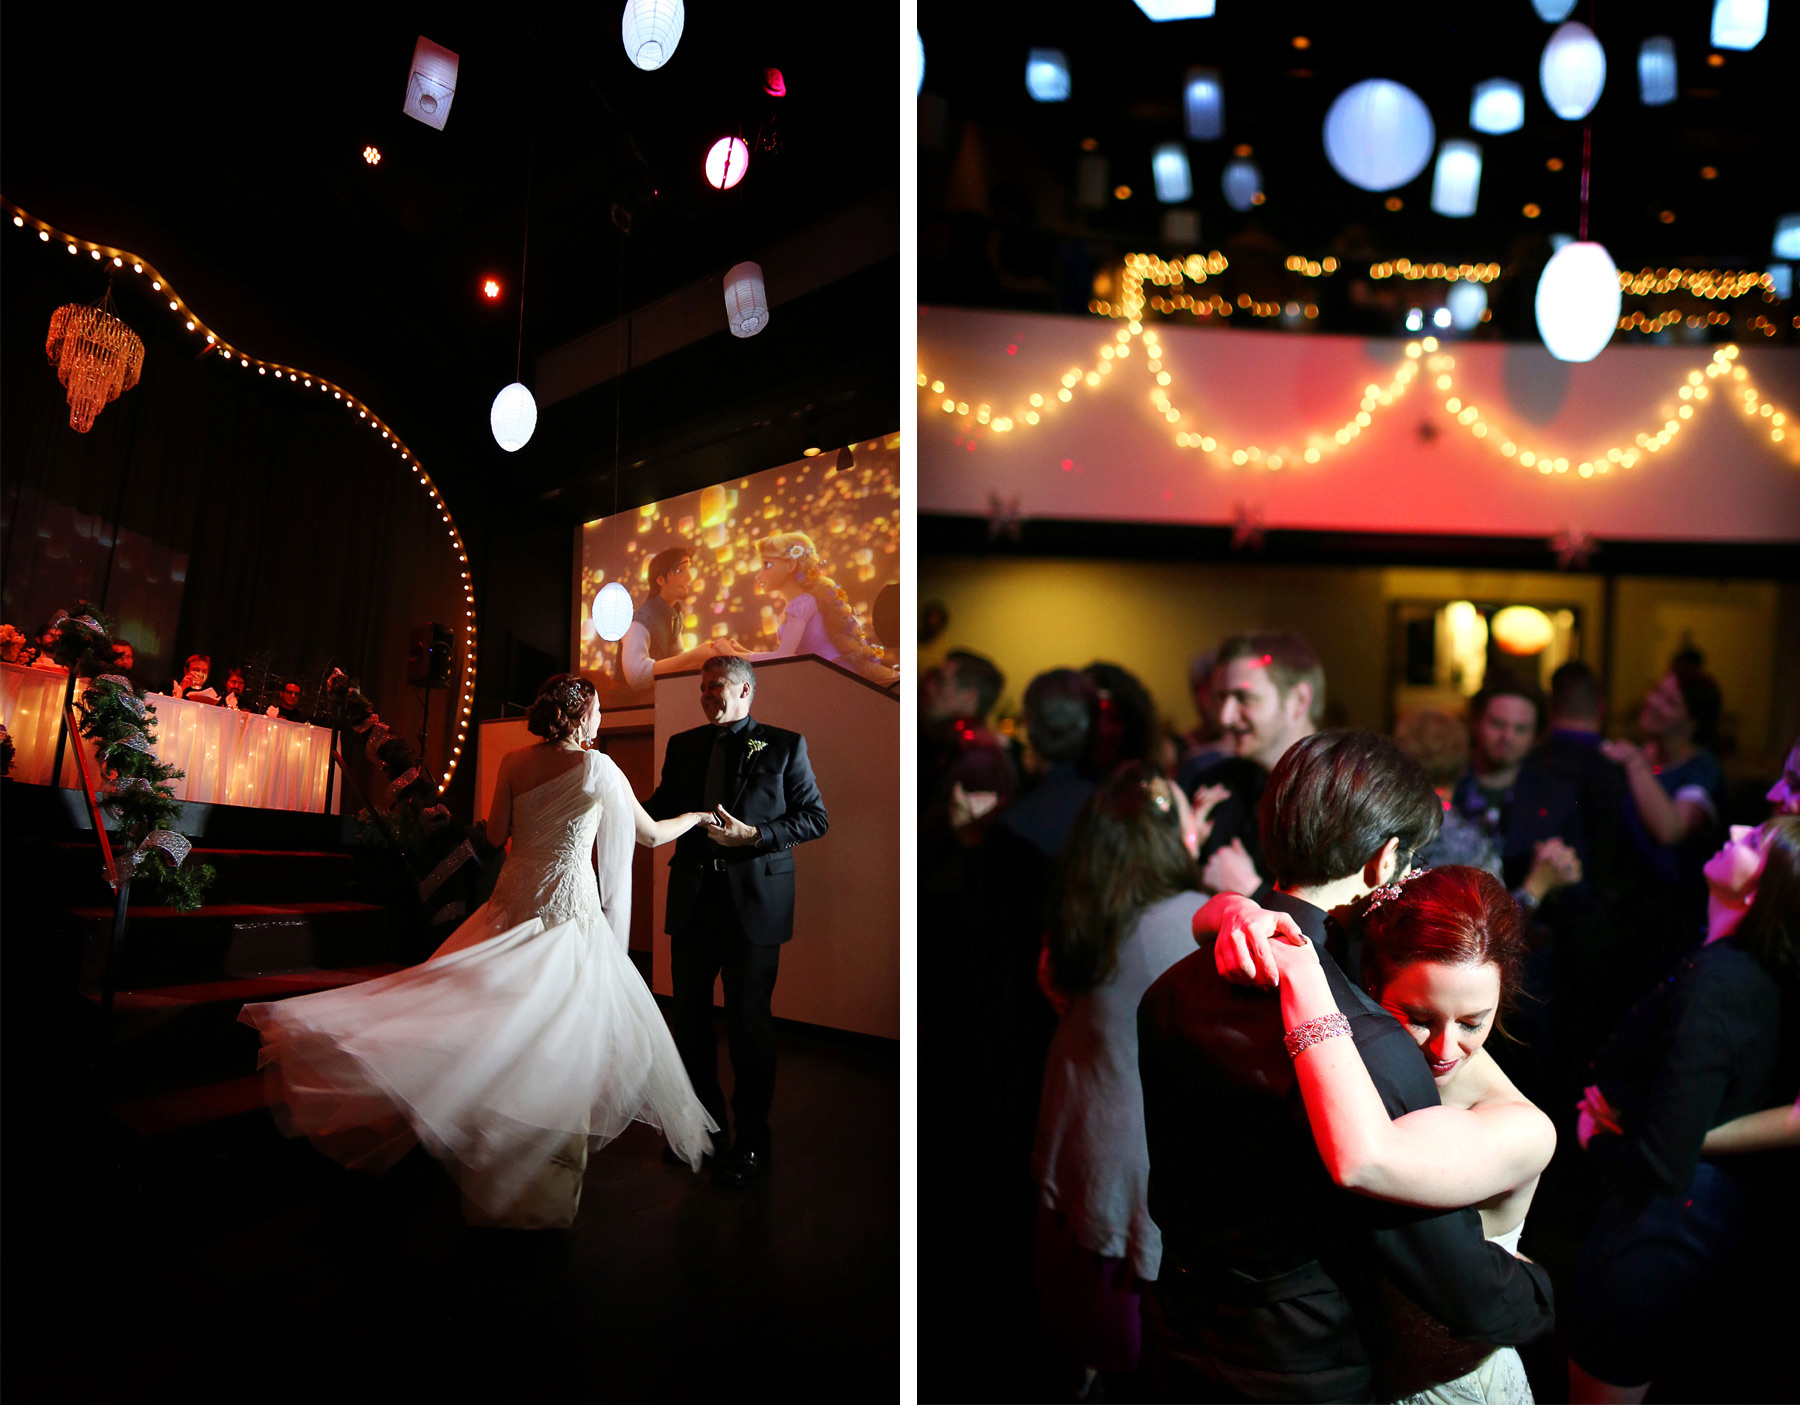 14-Minneapolis-Minnesota-Wedding-Photography-by-Vick-Photography--Chanhassen-Dinner-Theatres-Reception-First-Dance-Ashley-and-Aaron.jpg